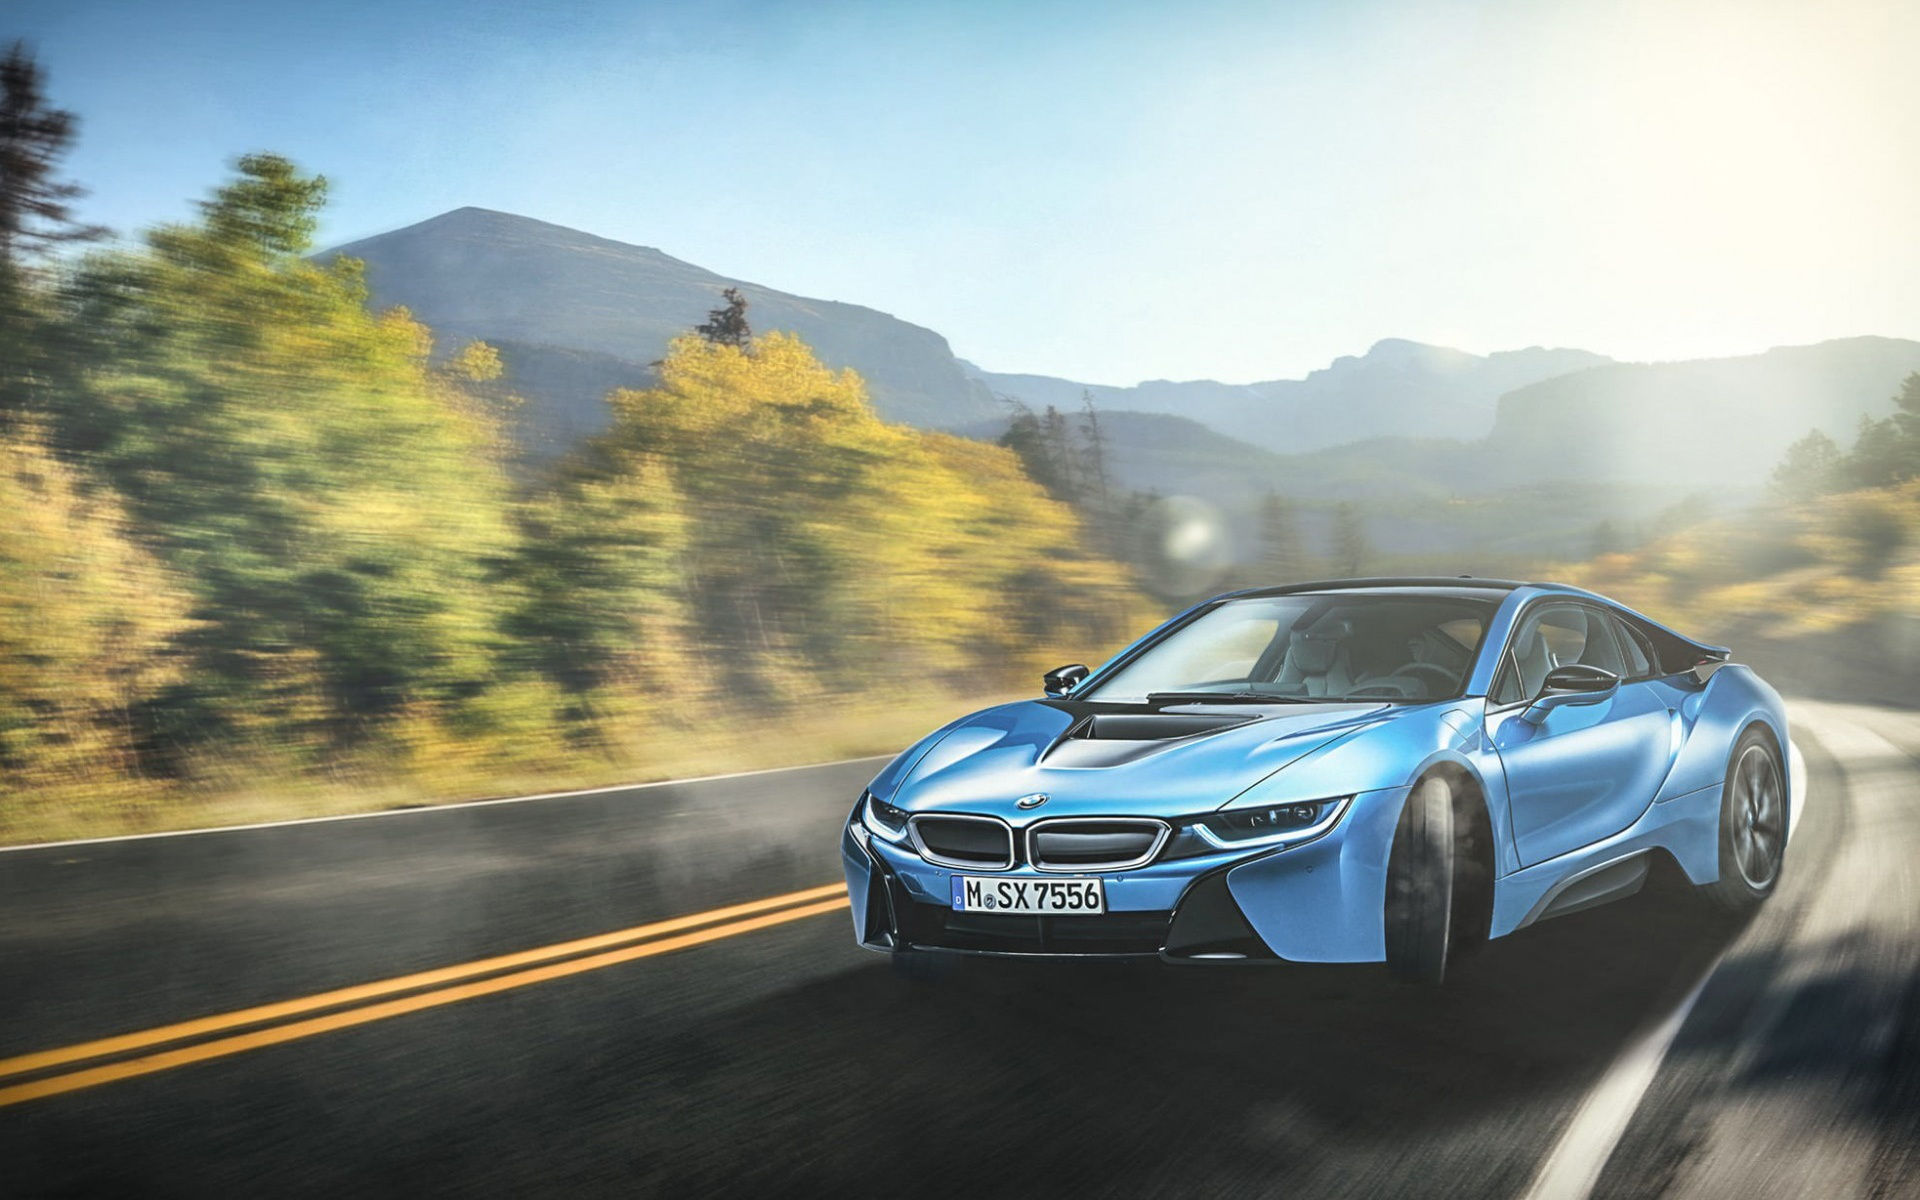 Bmw I8 Blue Wallpapers In Jpg Format For Free Download